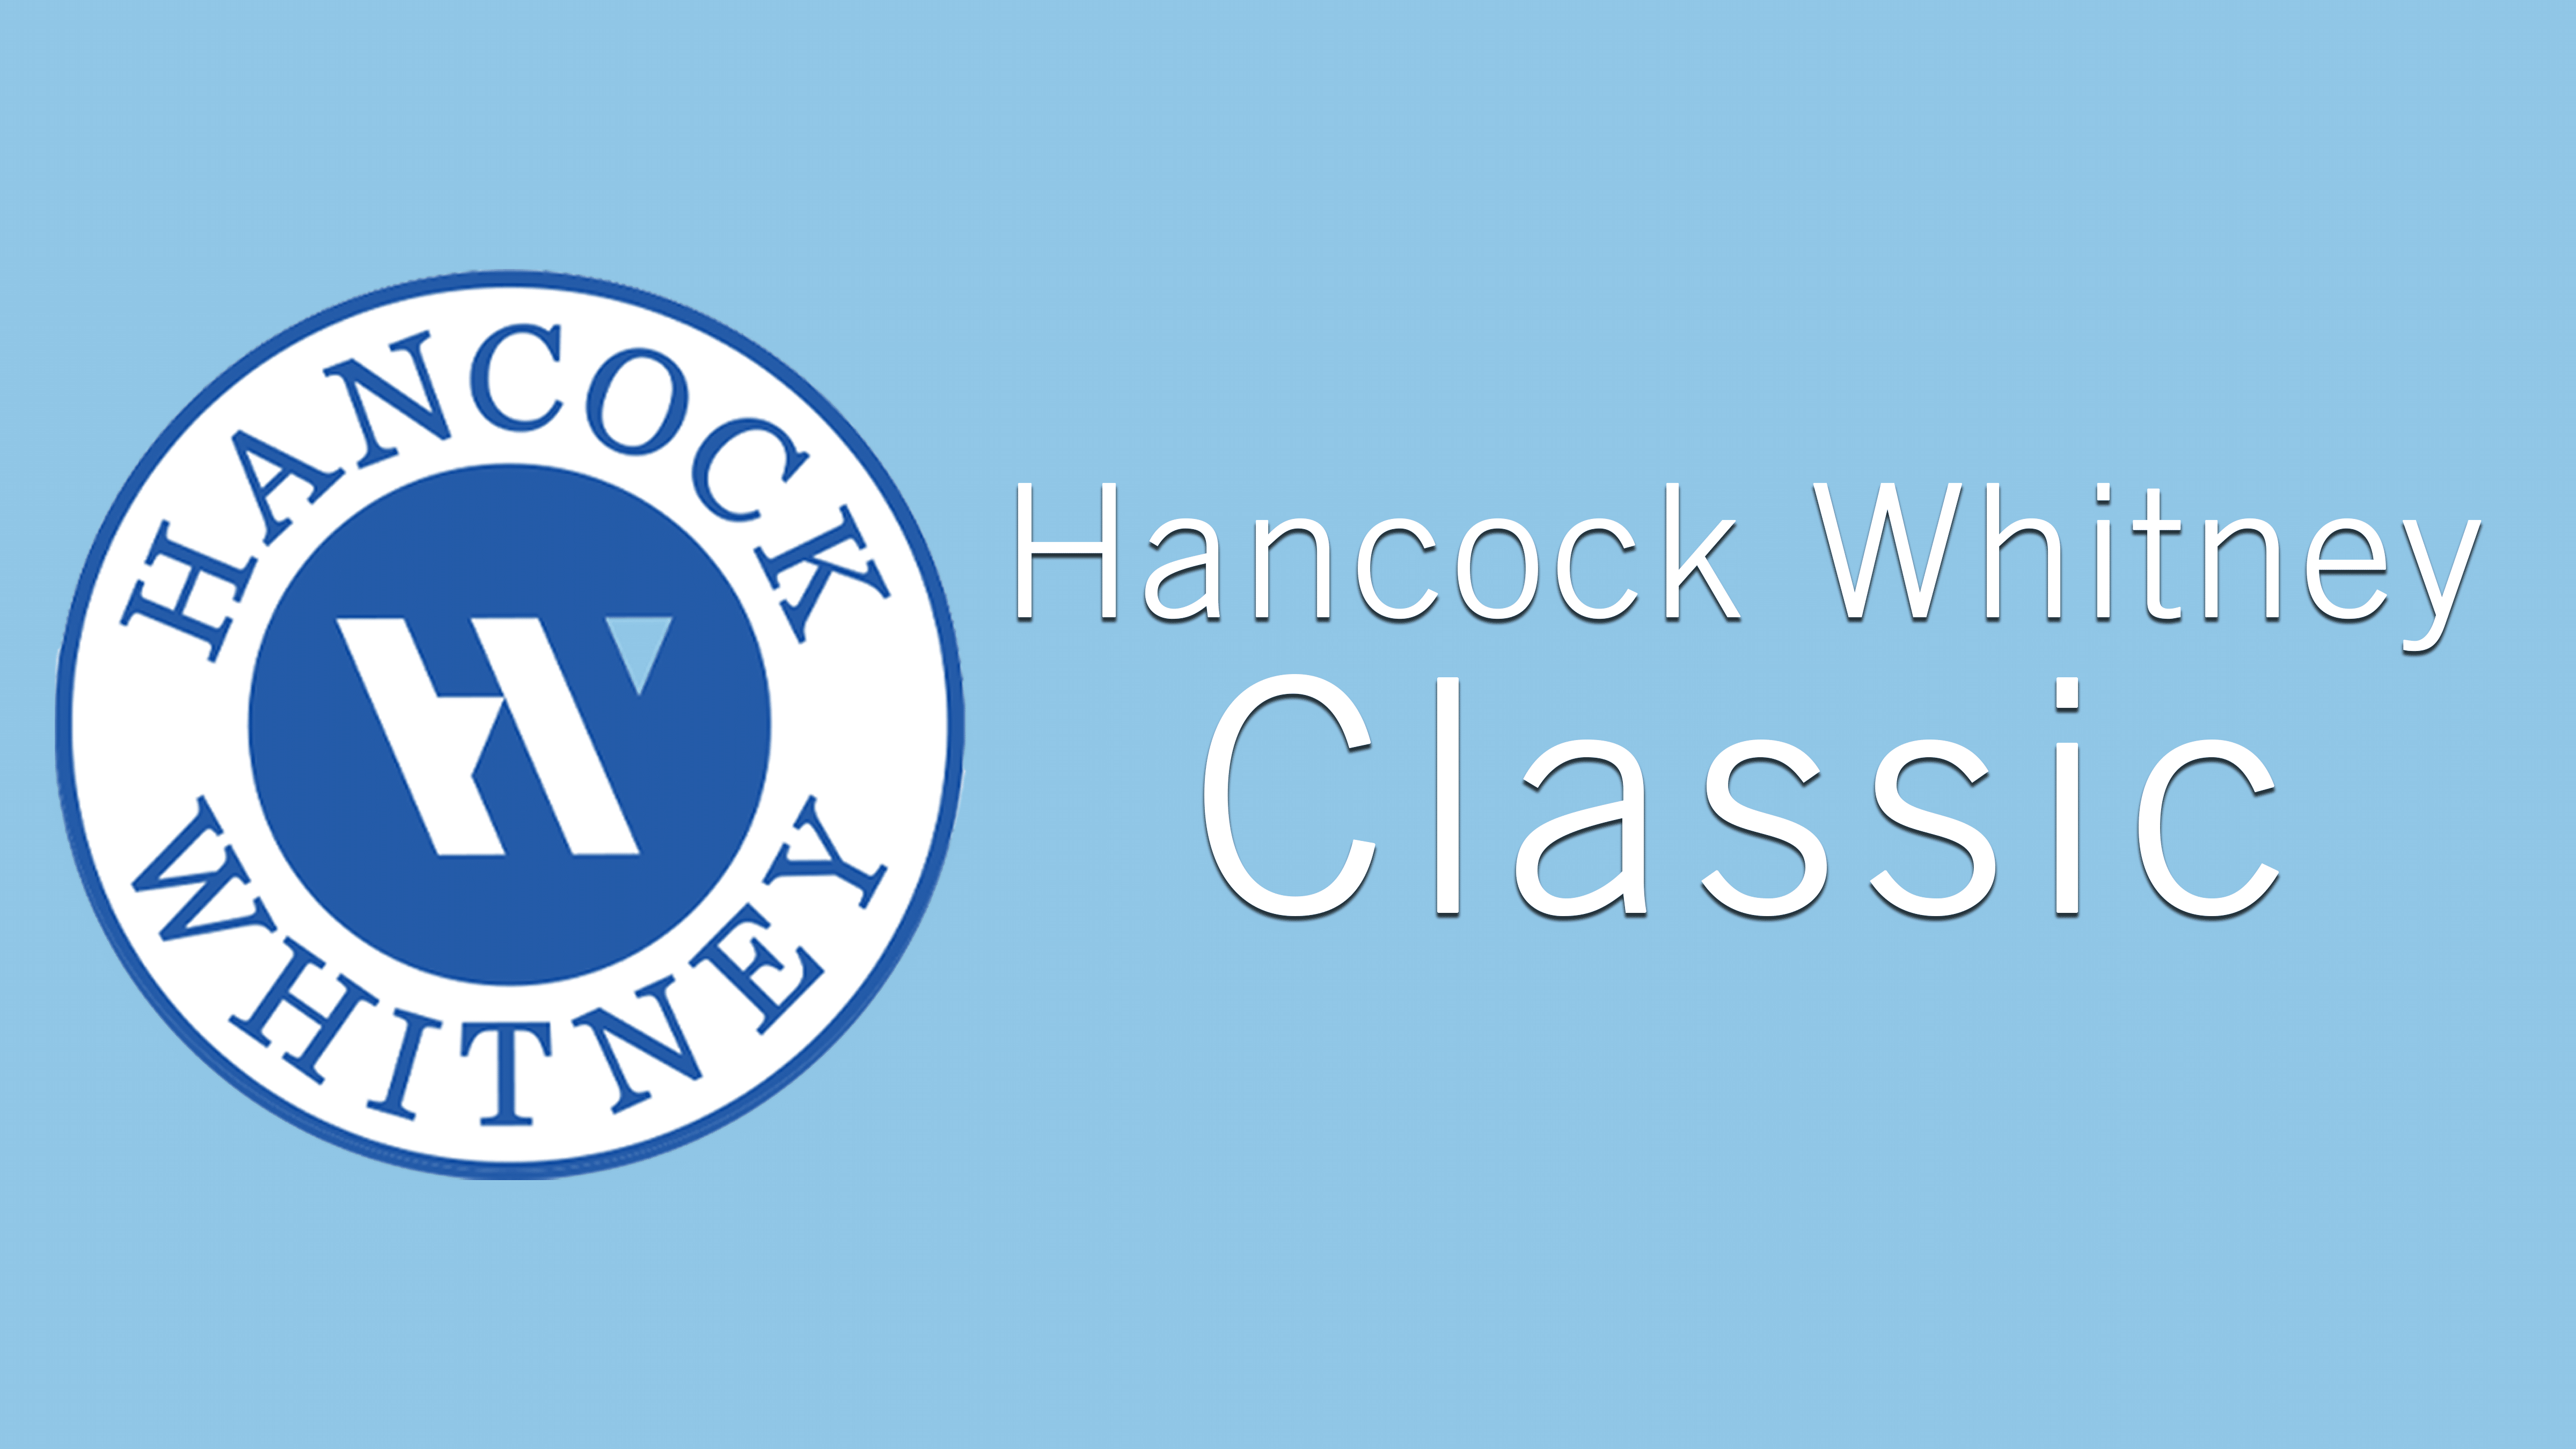 Hancock Whintey Classic Graphic 16x9